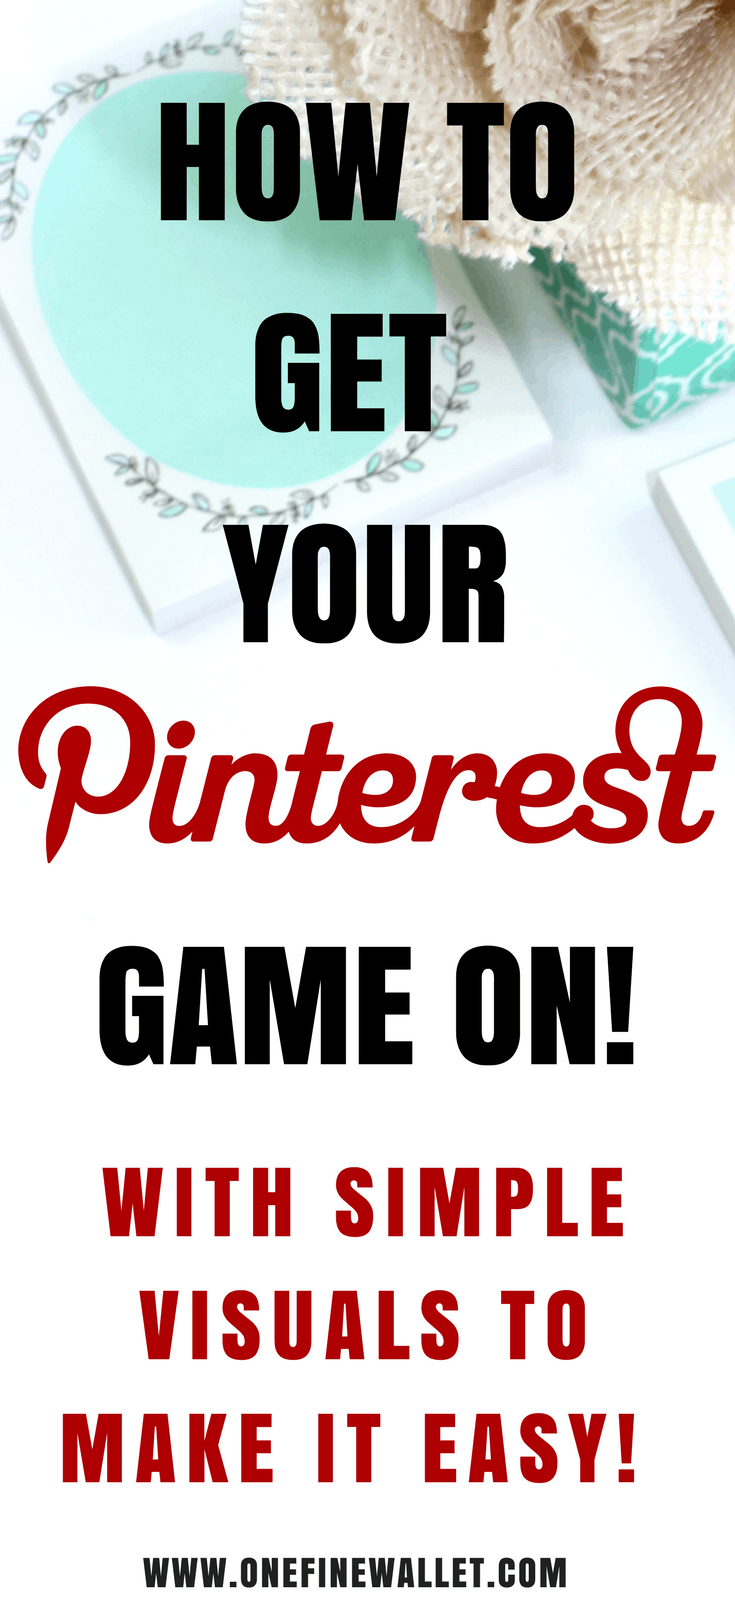 Here's everything you need to know about getting your pinterest game on as a new blogger to gain that blog traffic. #pinteresttips #pintereststrategies #pinterestforbloggers